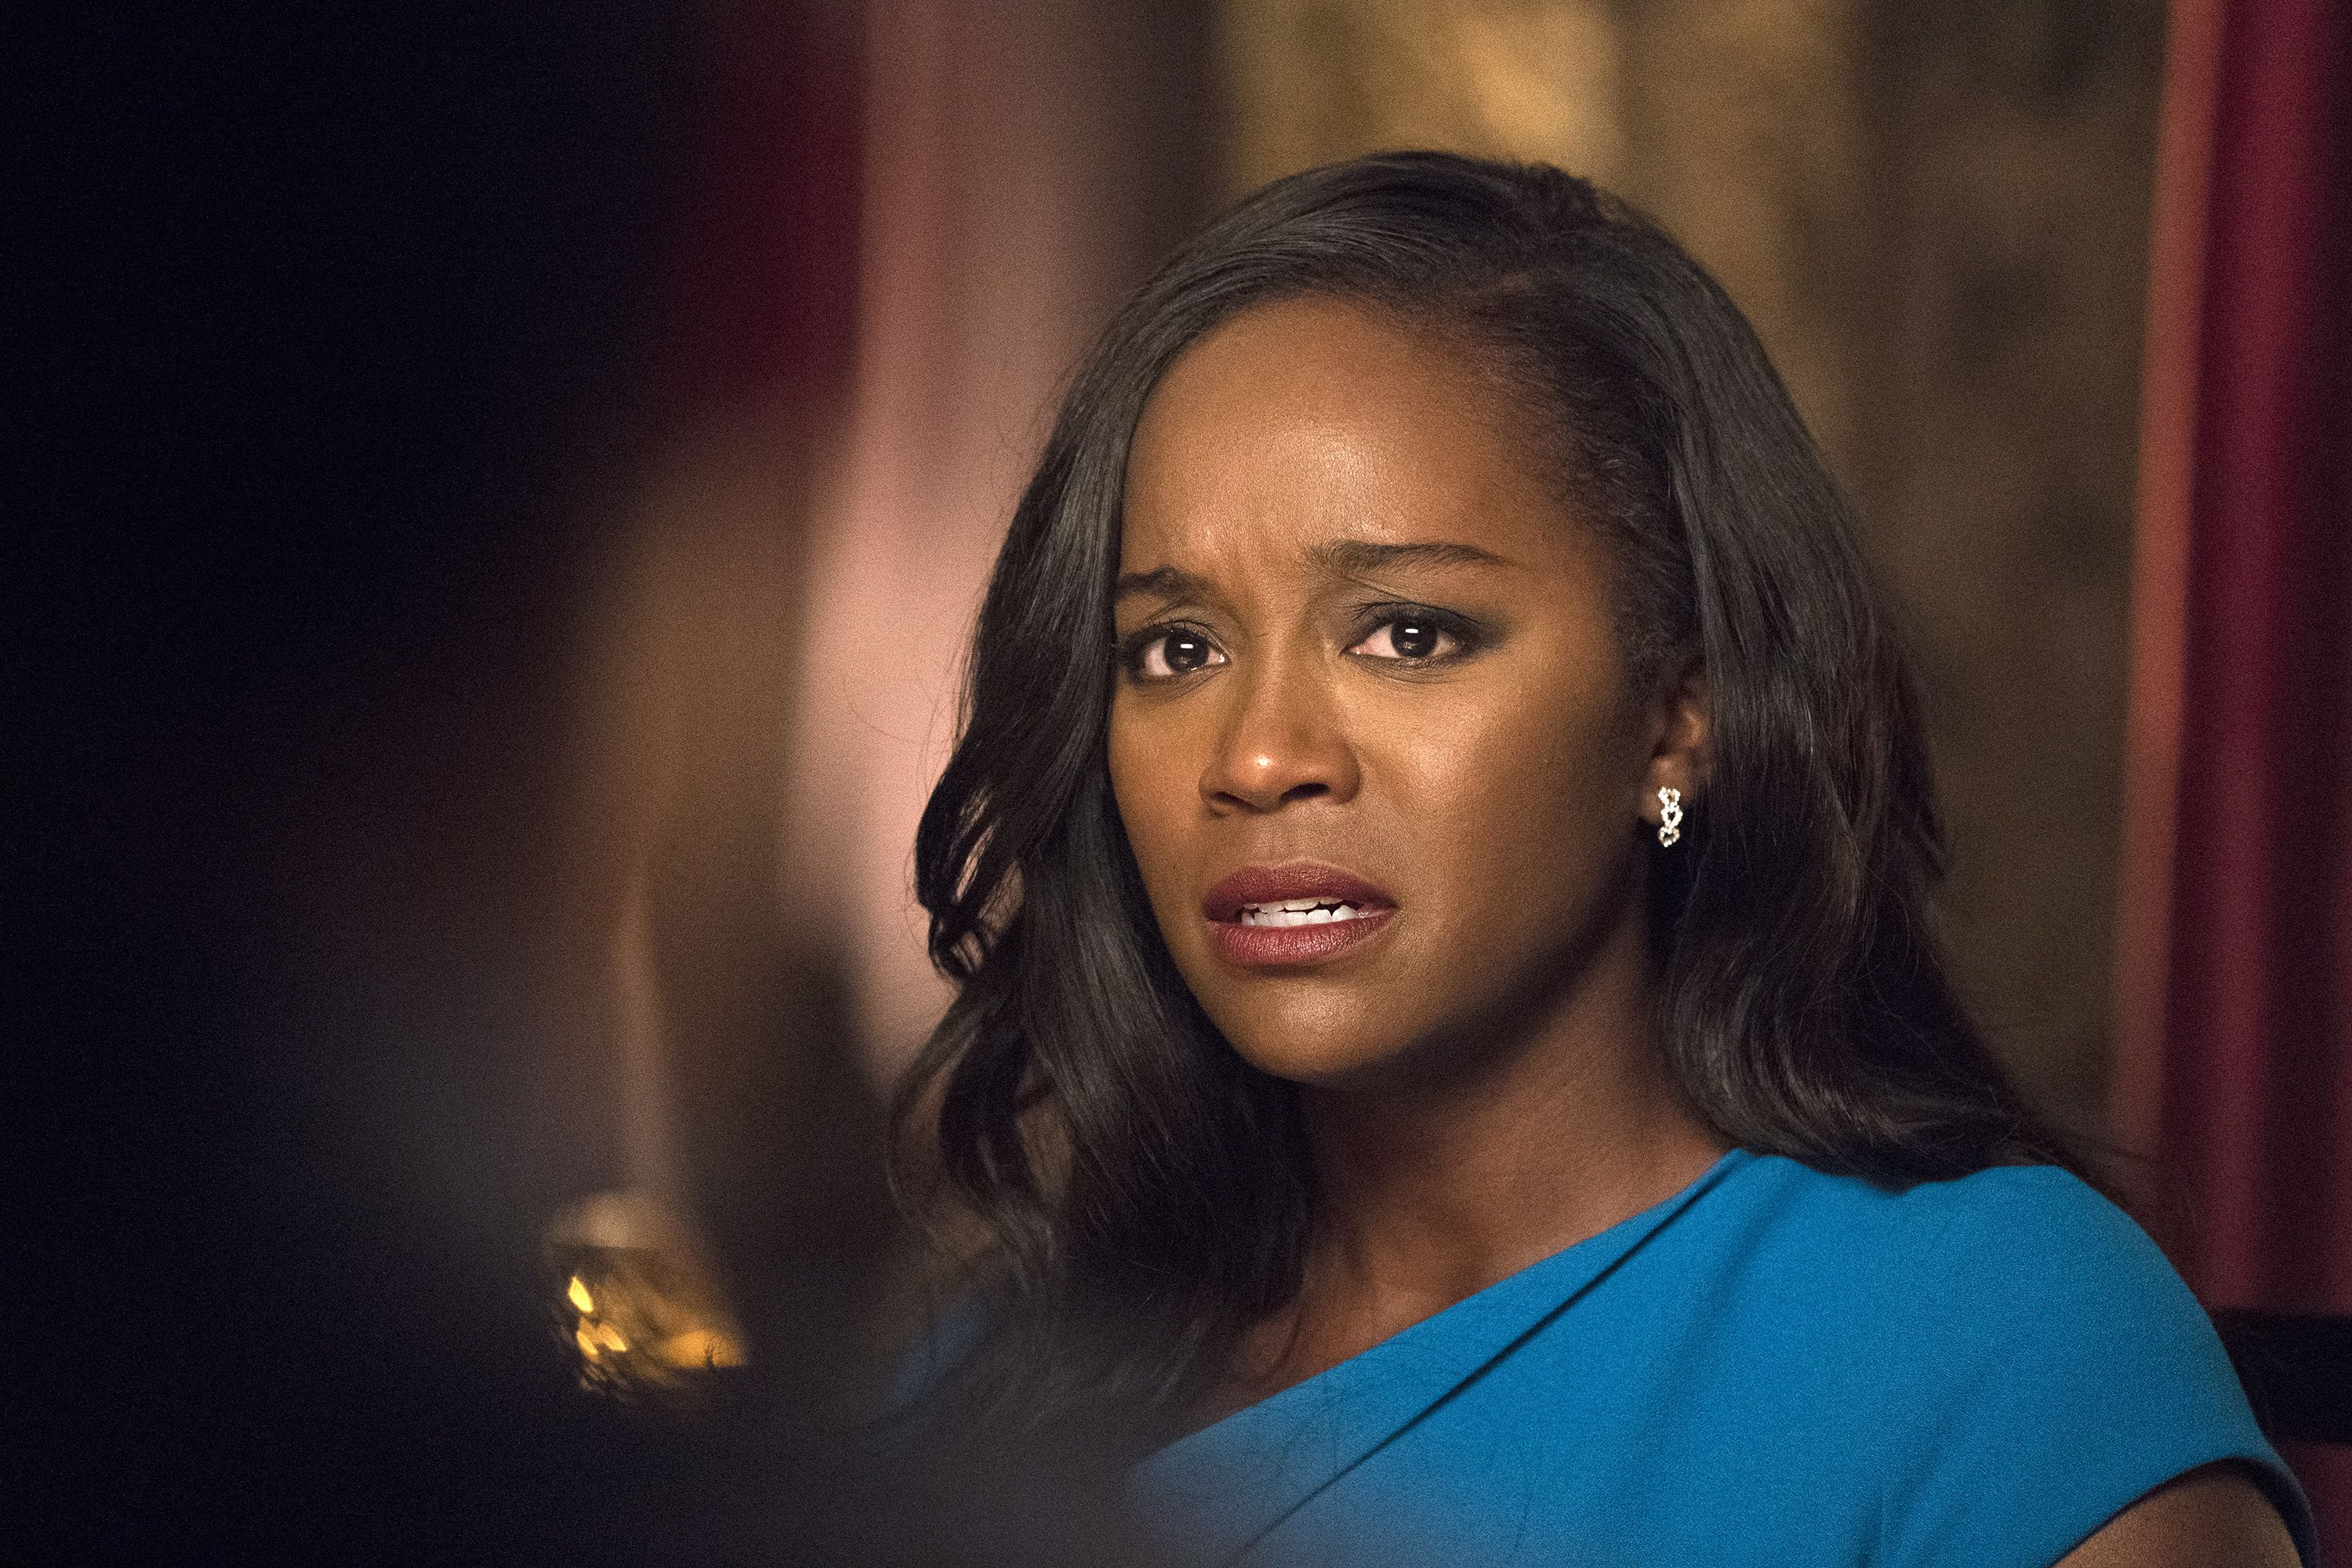 'How To Get Away With Murder' Season 4 Promo & Stills